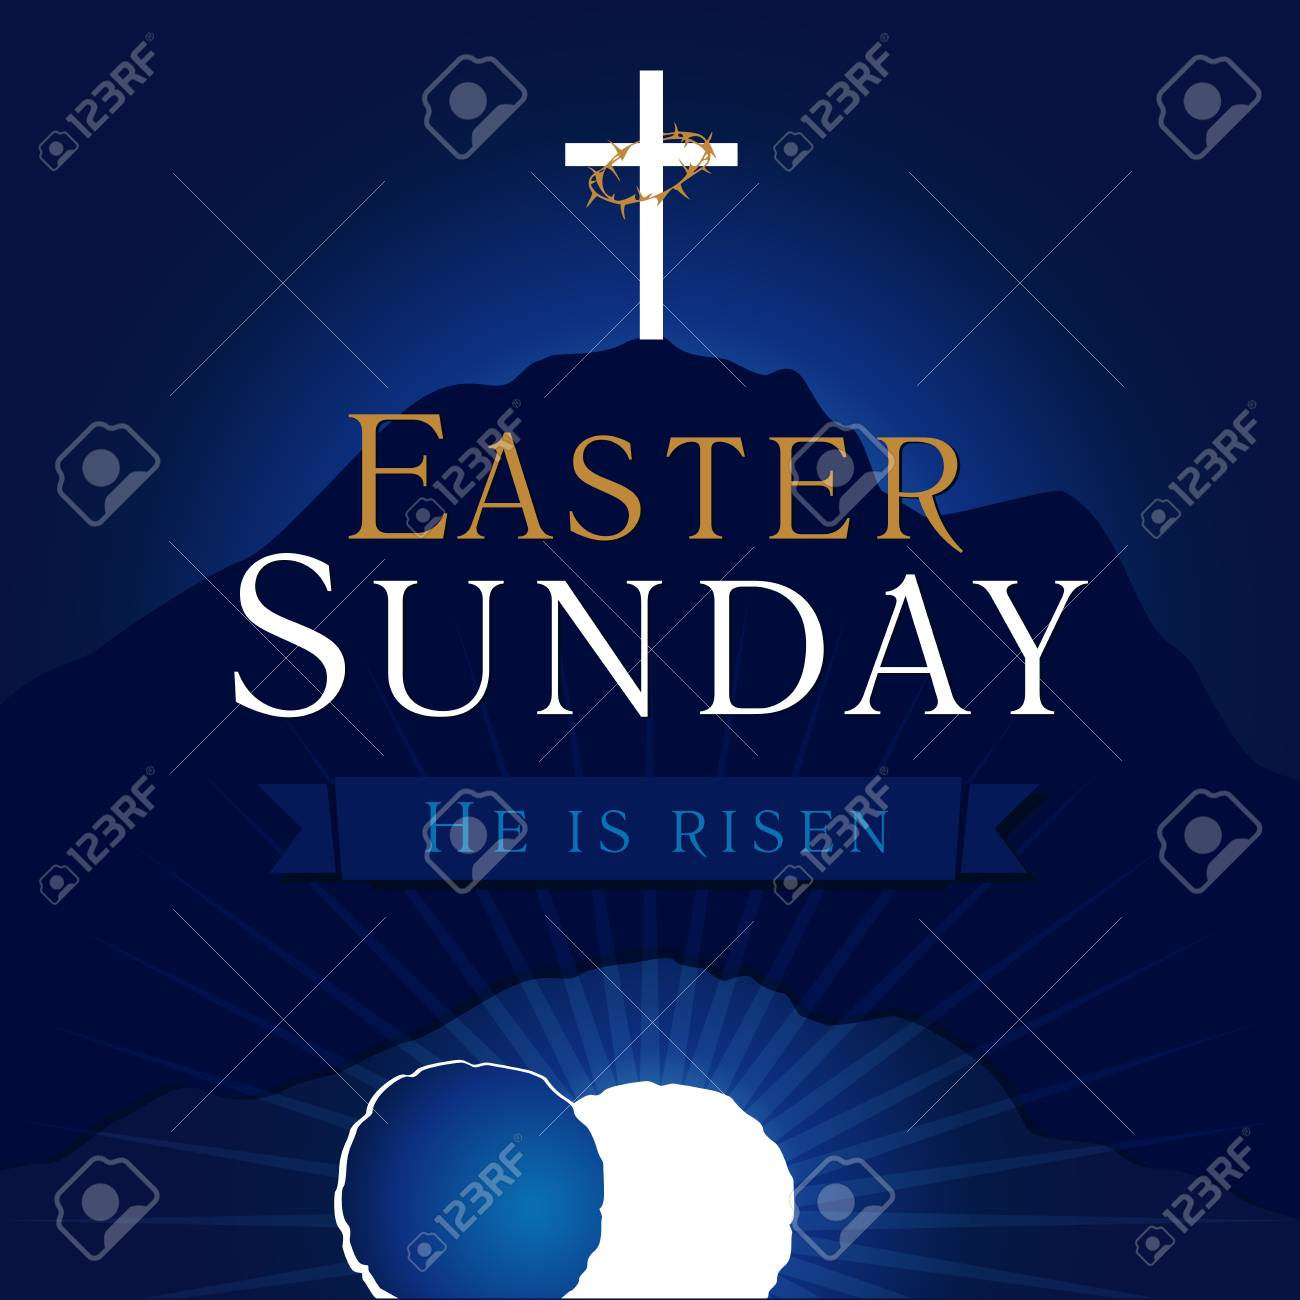 Easter Sunday He Is Risen Greetings Invite Vector Blue Color